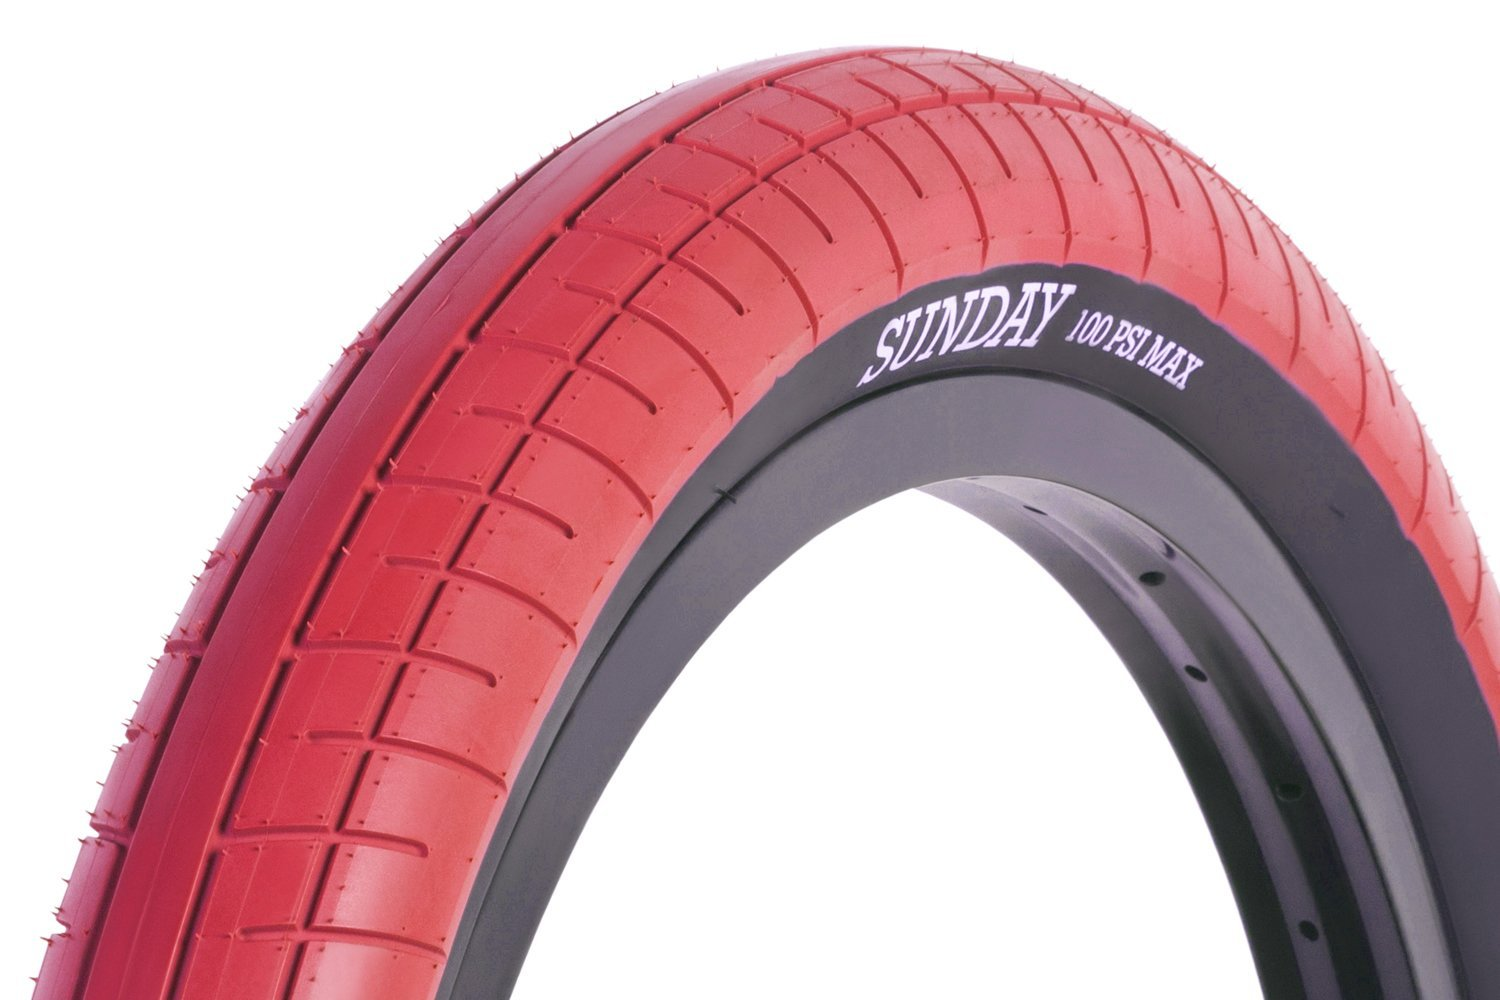 20x2.40 Sunday BMX Street Sweeper Tire - 100psi - Red w/ Black Sidewall